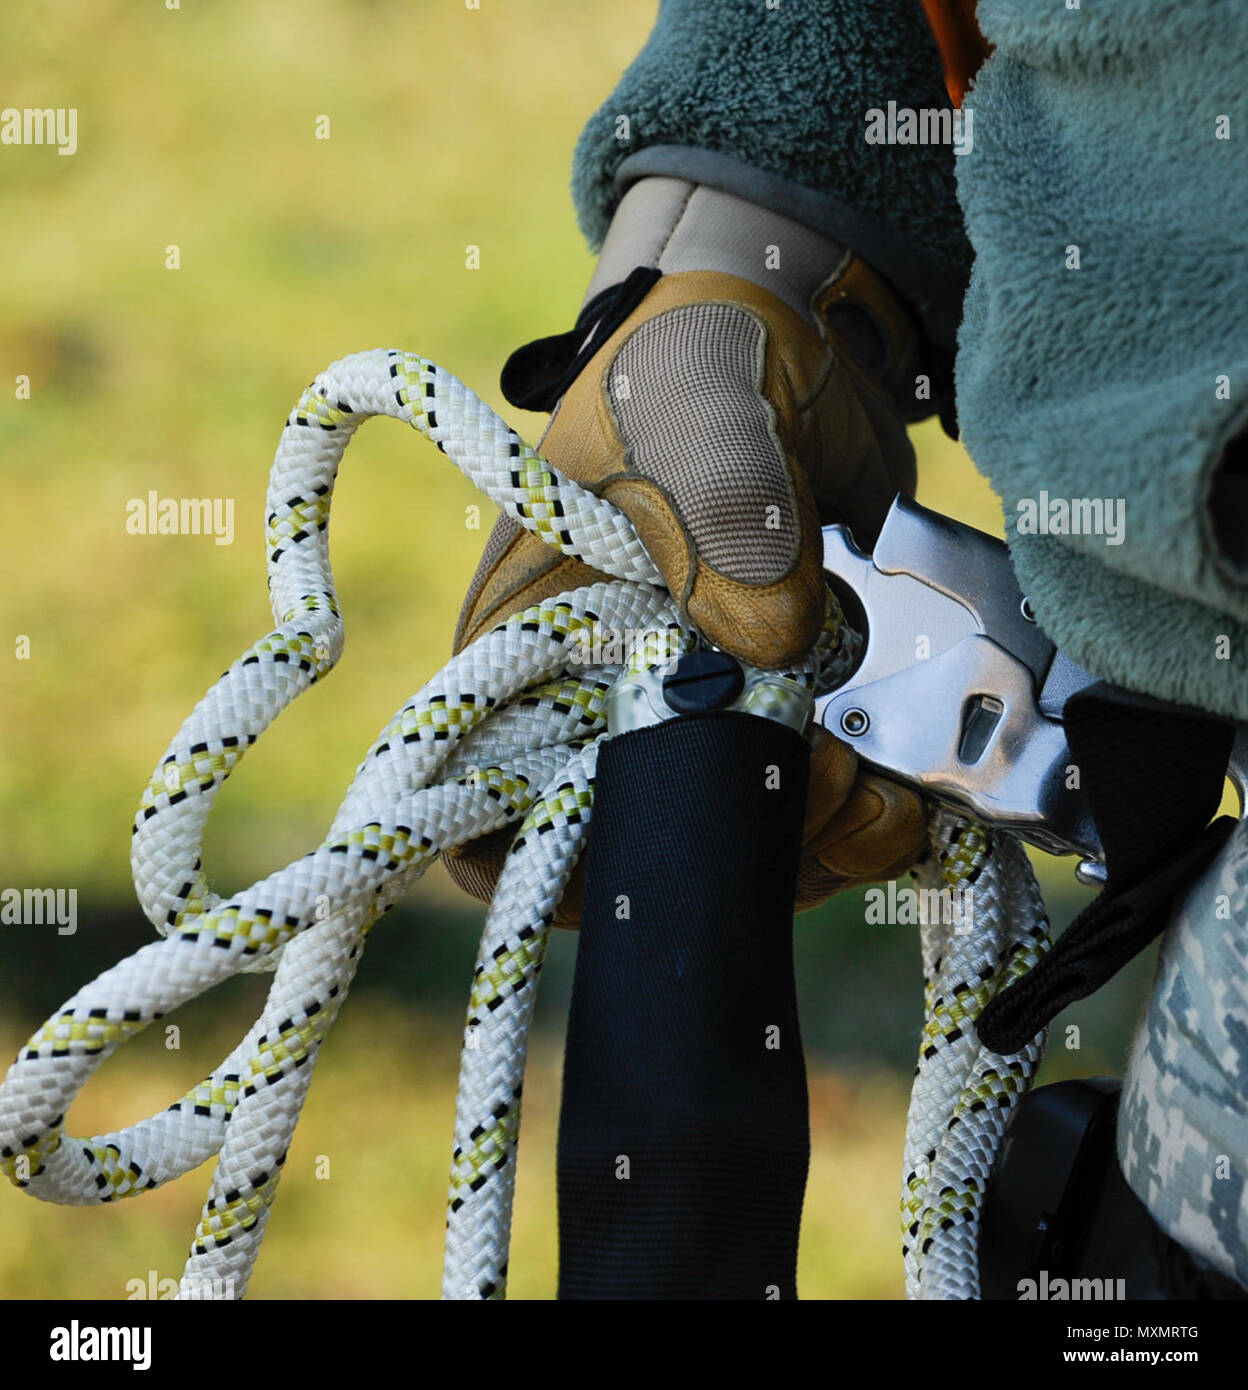 Senior Airman Mathew Godec, 86th Operations Support Squadron airfield systems technician, bundles excess rope at Ramstein Air Base, Germany, Nov. 14, 2016. This equipment is used to assist 86th OSS Airmen in climbing air traffic control radio antennas across the base to keep the airfield open and the Instrument Landing Systems in compliance with the Federal Aviation Administration and International Civil Aviation Organization standards. (U.S. Air Force photo by Airman 1st Class Savannah L. Waters) - Stock Image